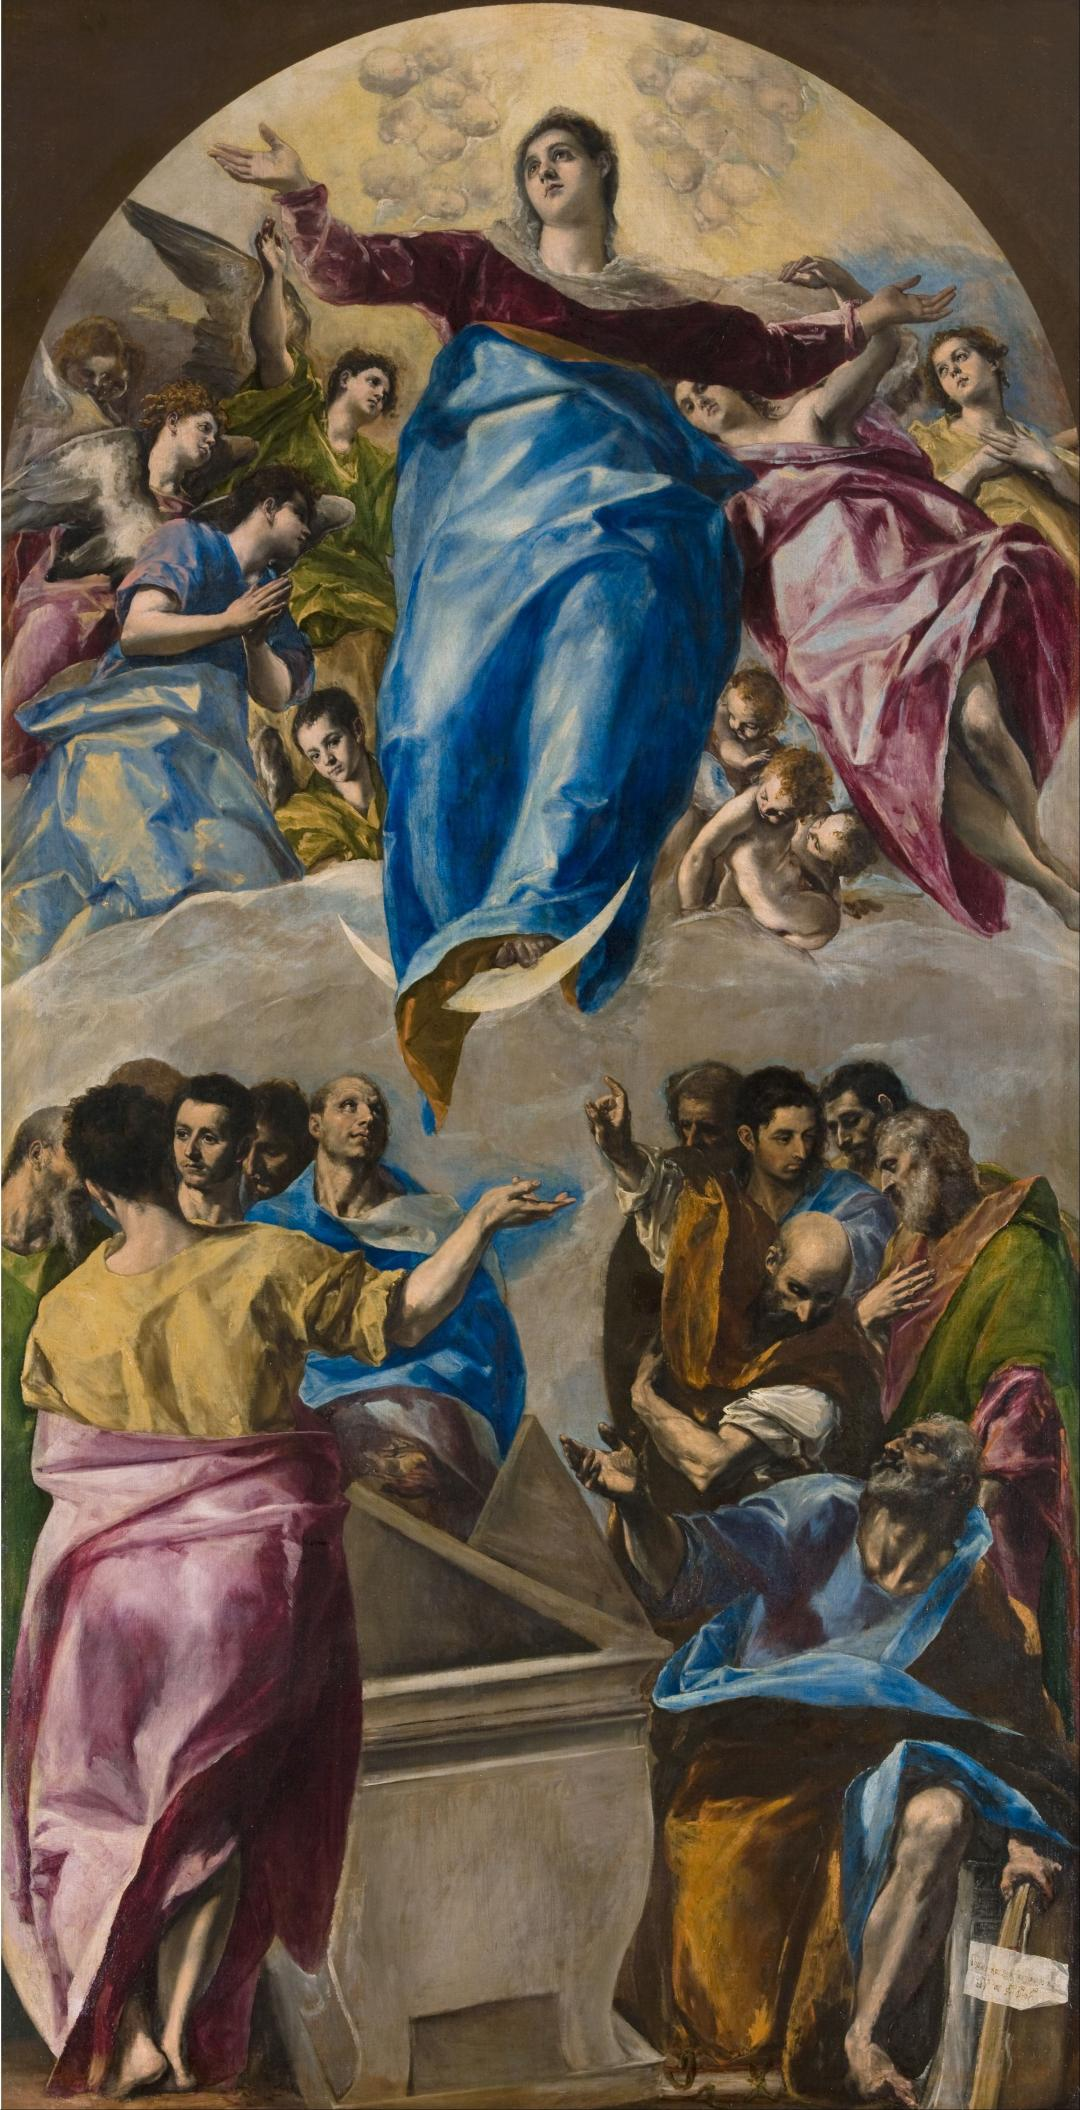 El Greco - The Assumption of the Virgin, 1577-79, high altar at Santo Domingo el Antiguo, Toledo.